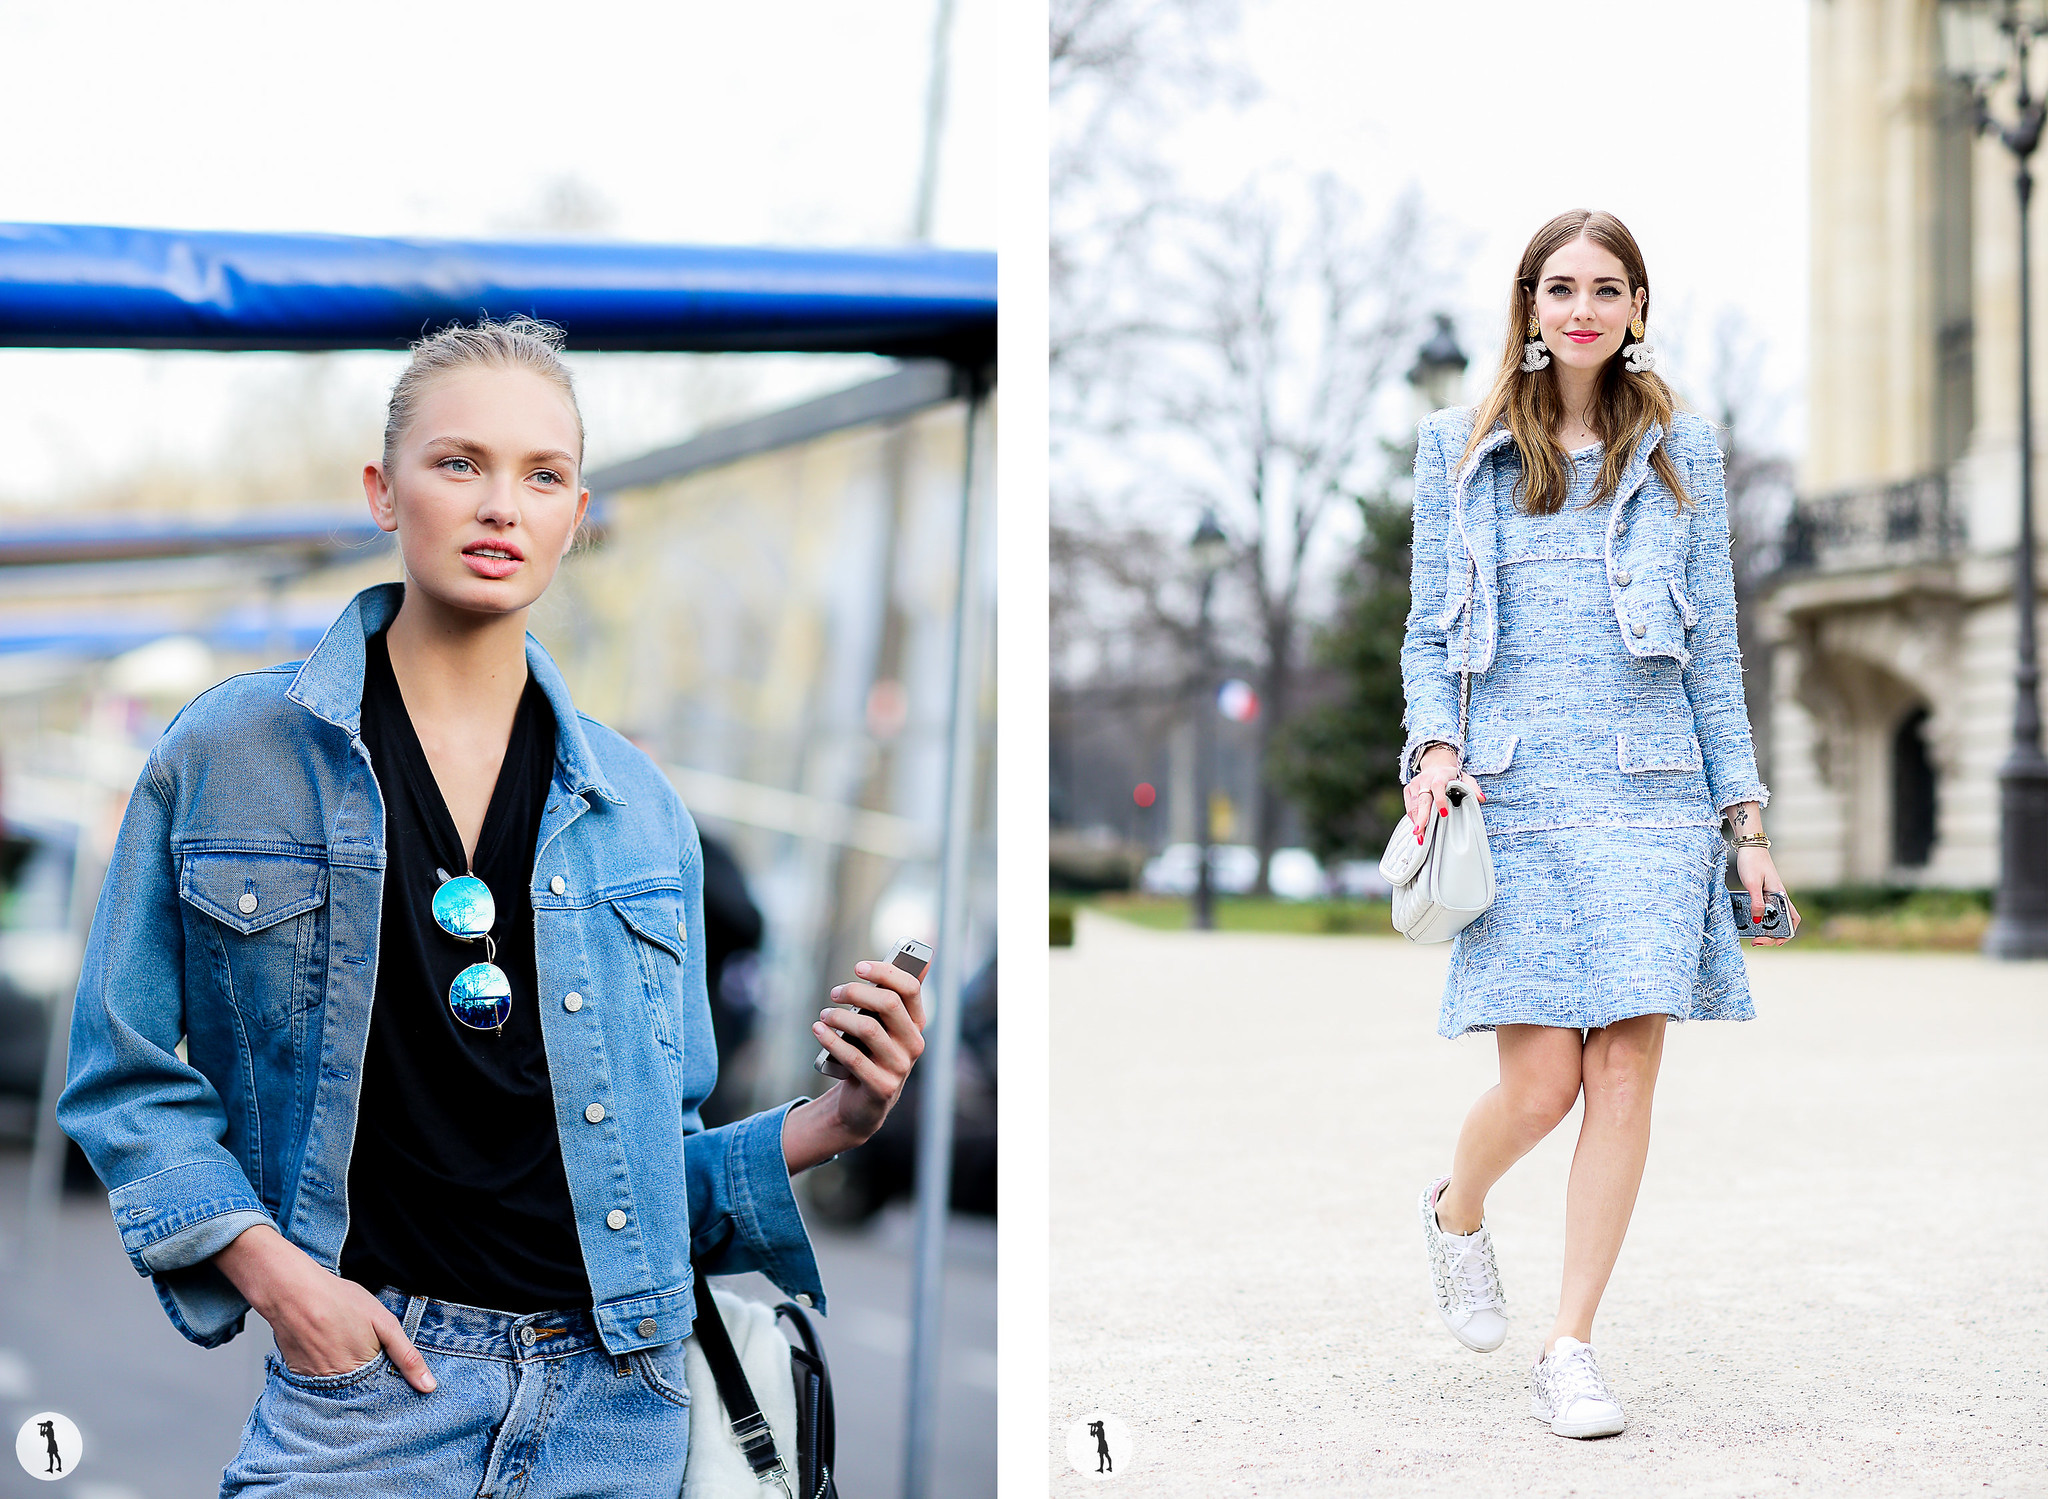 Street Style - Paris Fashion Week RDT FW15-16